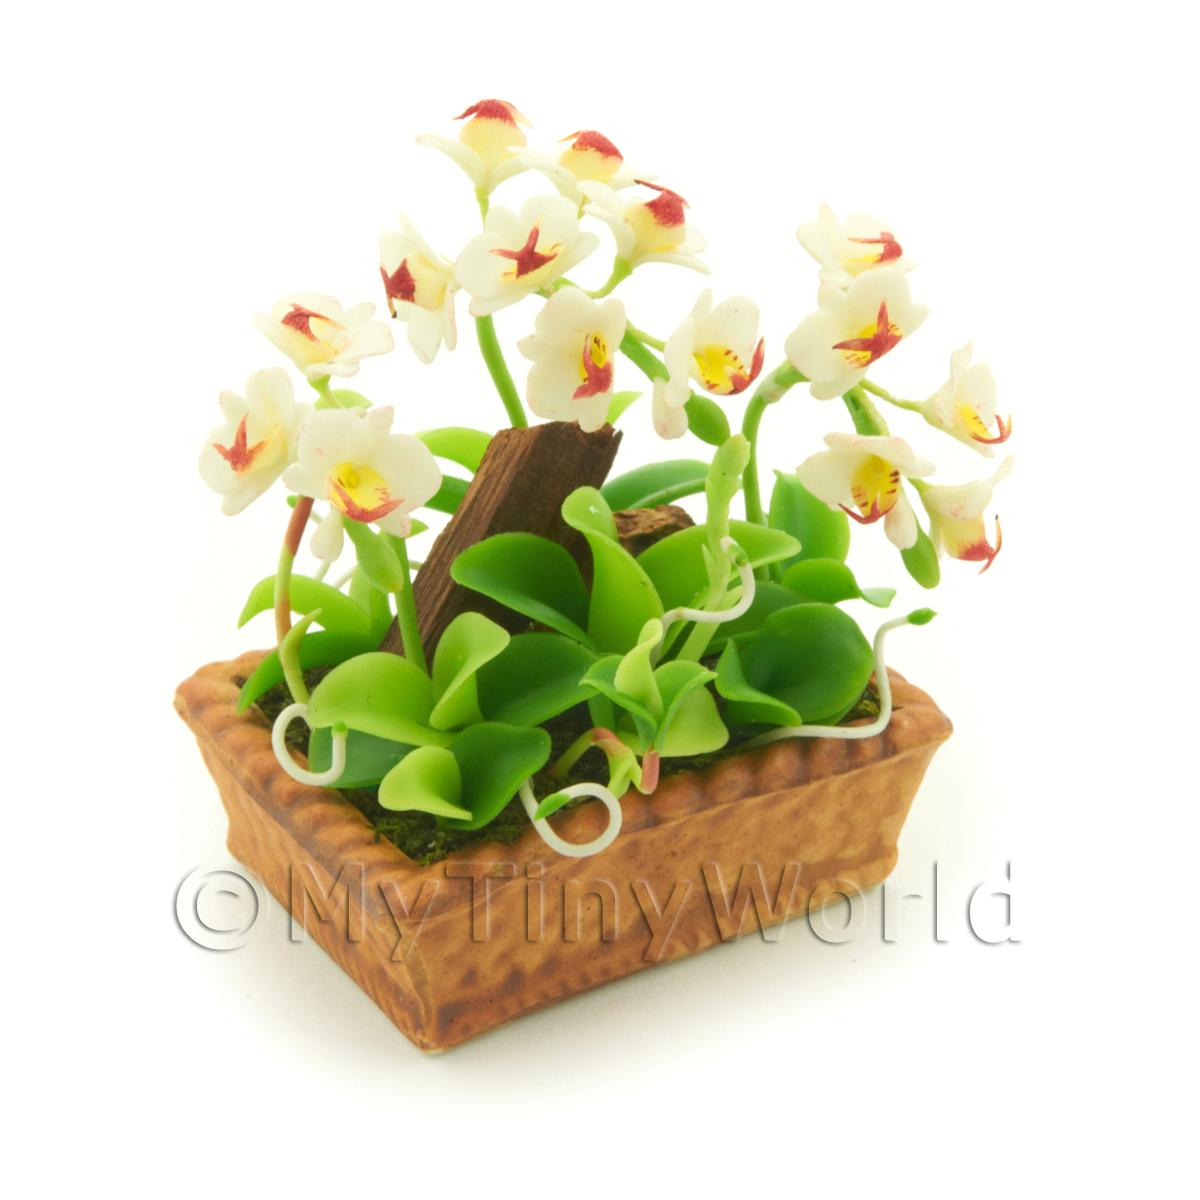 Dolls House Miniature White Dendrobium Orchid Display